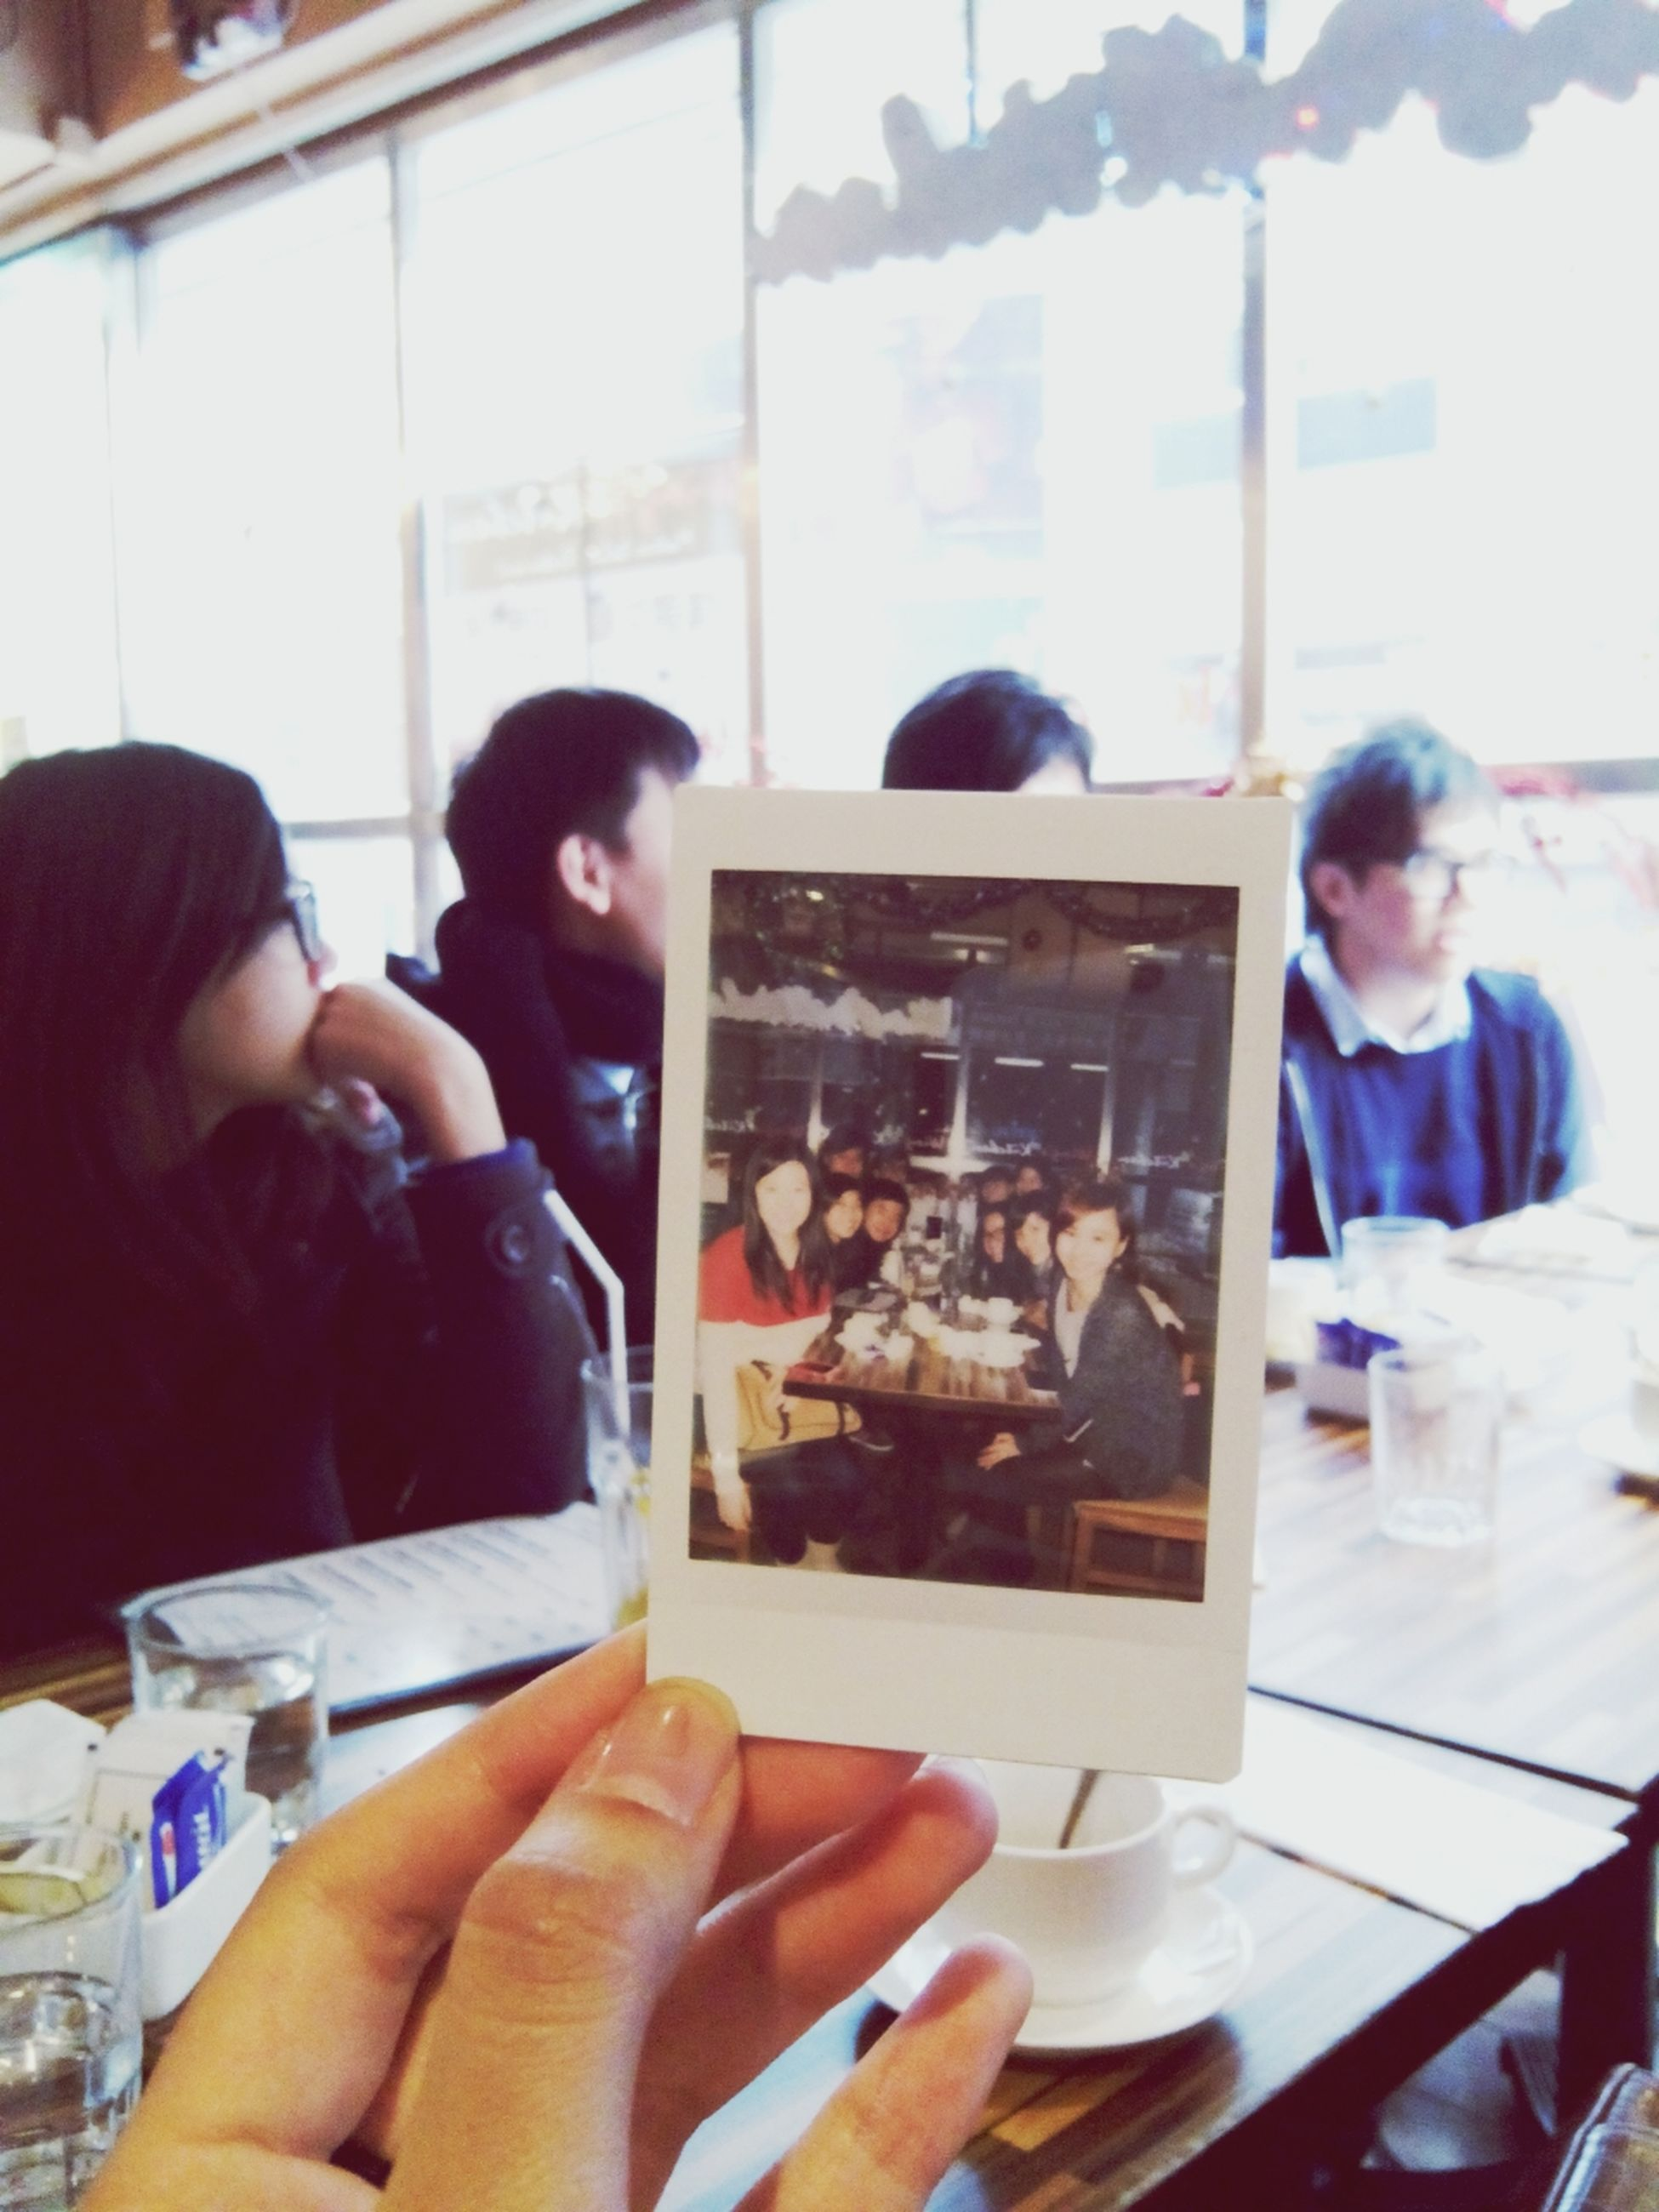 food and drink, indoors, lifestyles, leisure activity, person, sitting, casual clothing, waist up, young men, holding, food, table, young adult, restaurant, togetherness, drink, boys